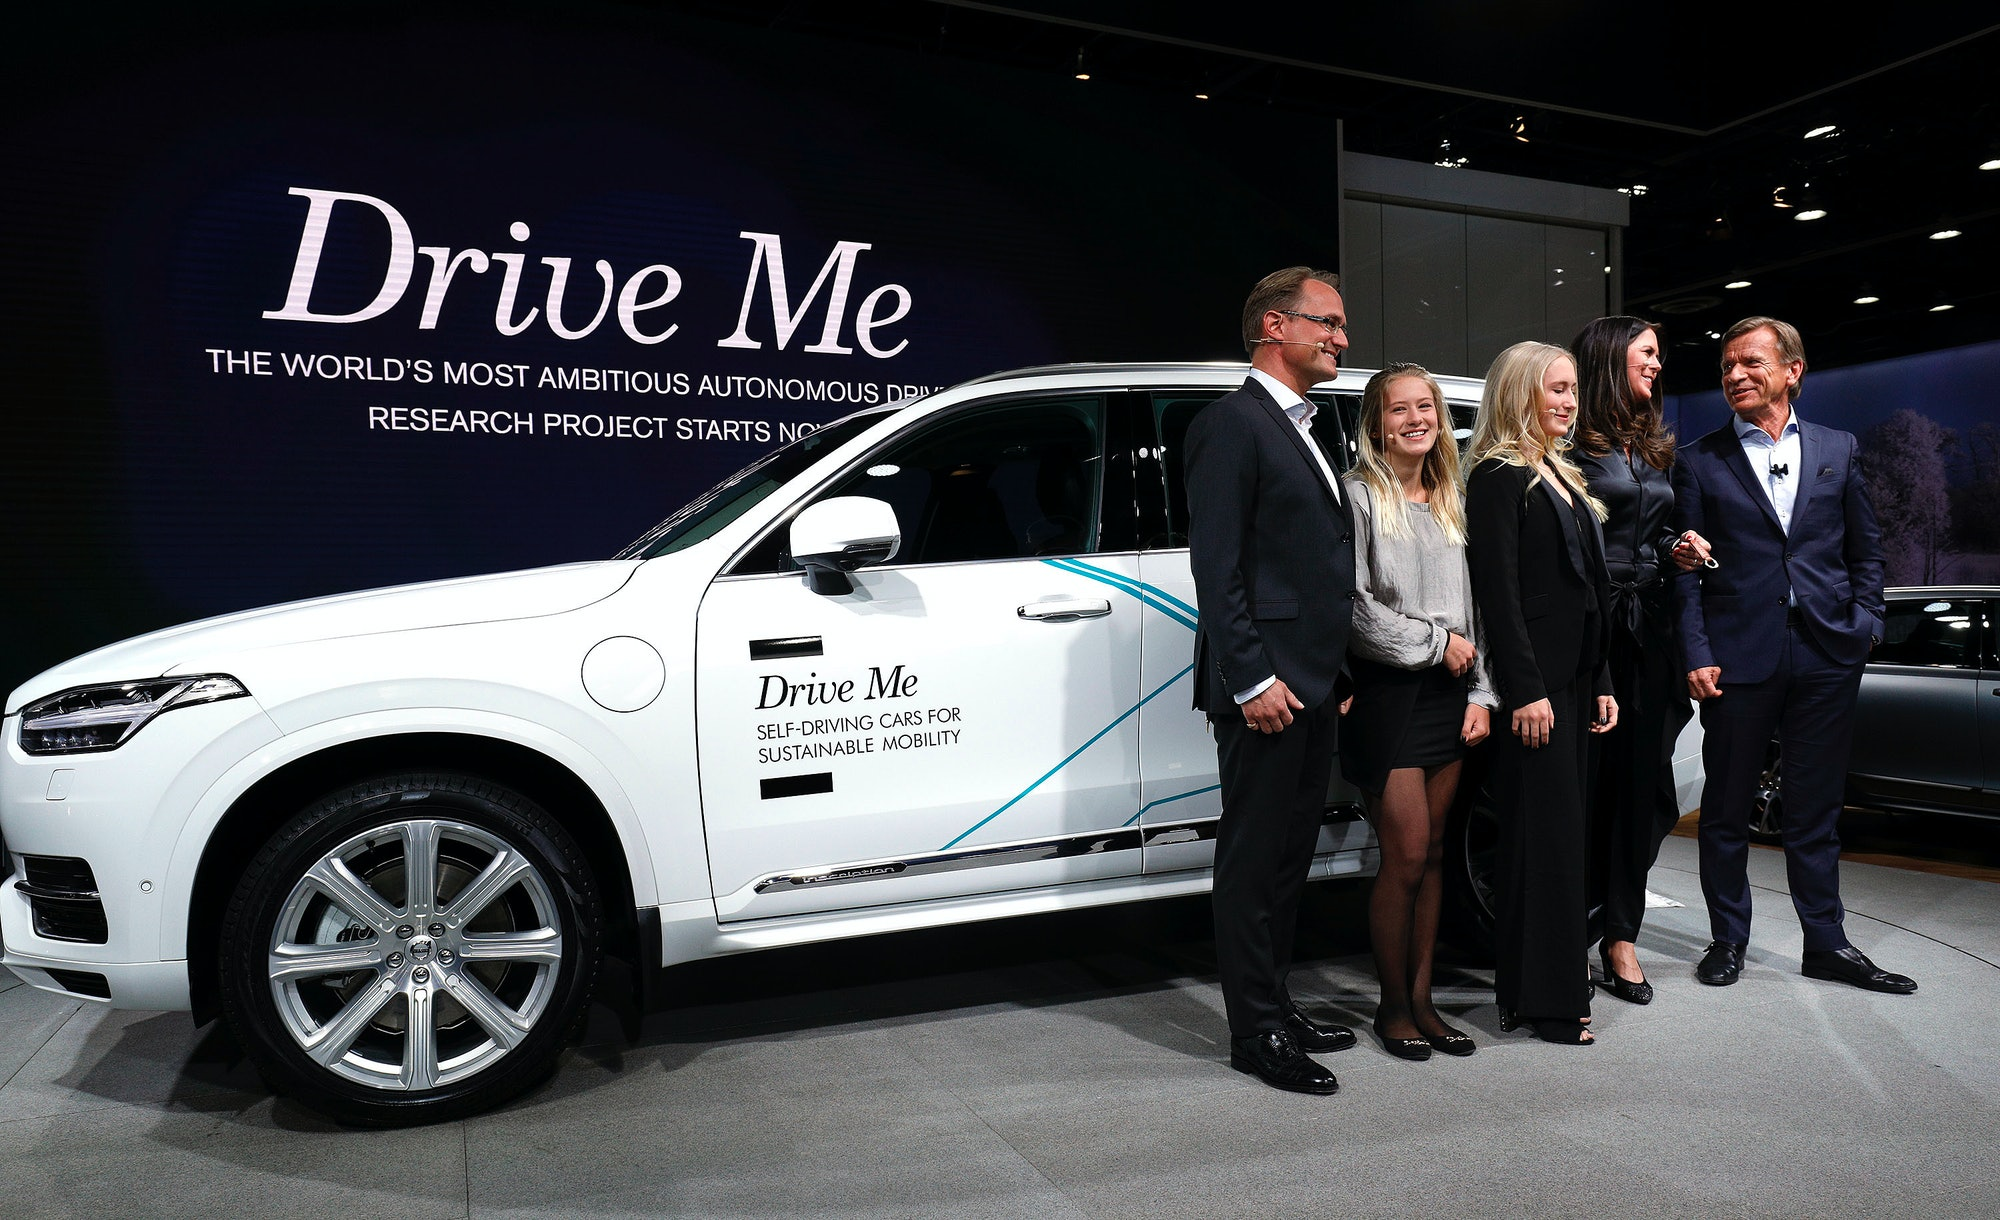 DETROIT, MI - JANUARY 9: Hakan Samuelsson (R), President and CEO, Volvo Car Group, stands with the Hain family from Sweden next to the autonomous Volvo vehicle they will be testing at the 2017 North American International Auto Show on January 9,2017in Detroit, Michigan. Approximately 5000 journalists from around the world and nearly 800,000 people are expected to attend the NAIAS between January 8th and January 22nd to see the more than 750 vehicles and numerous interactive displays. (Photo by Bill Pugliano/Getty Images)